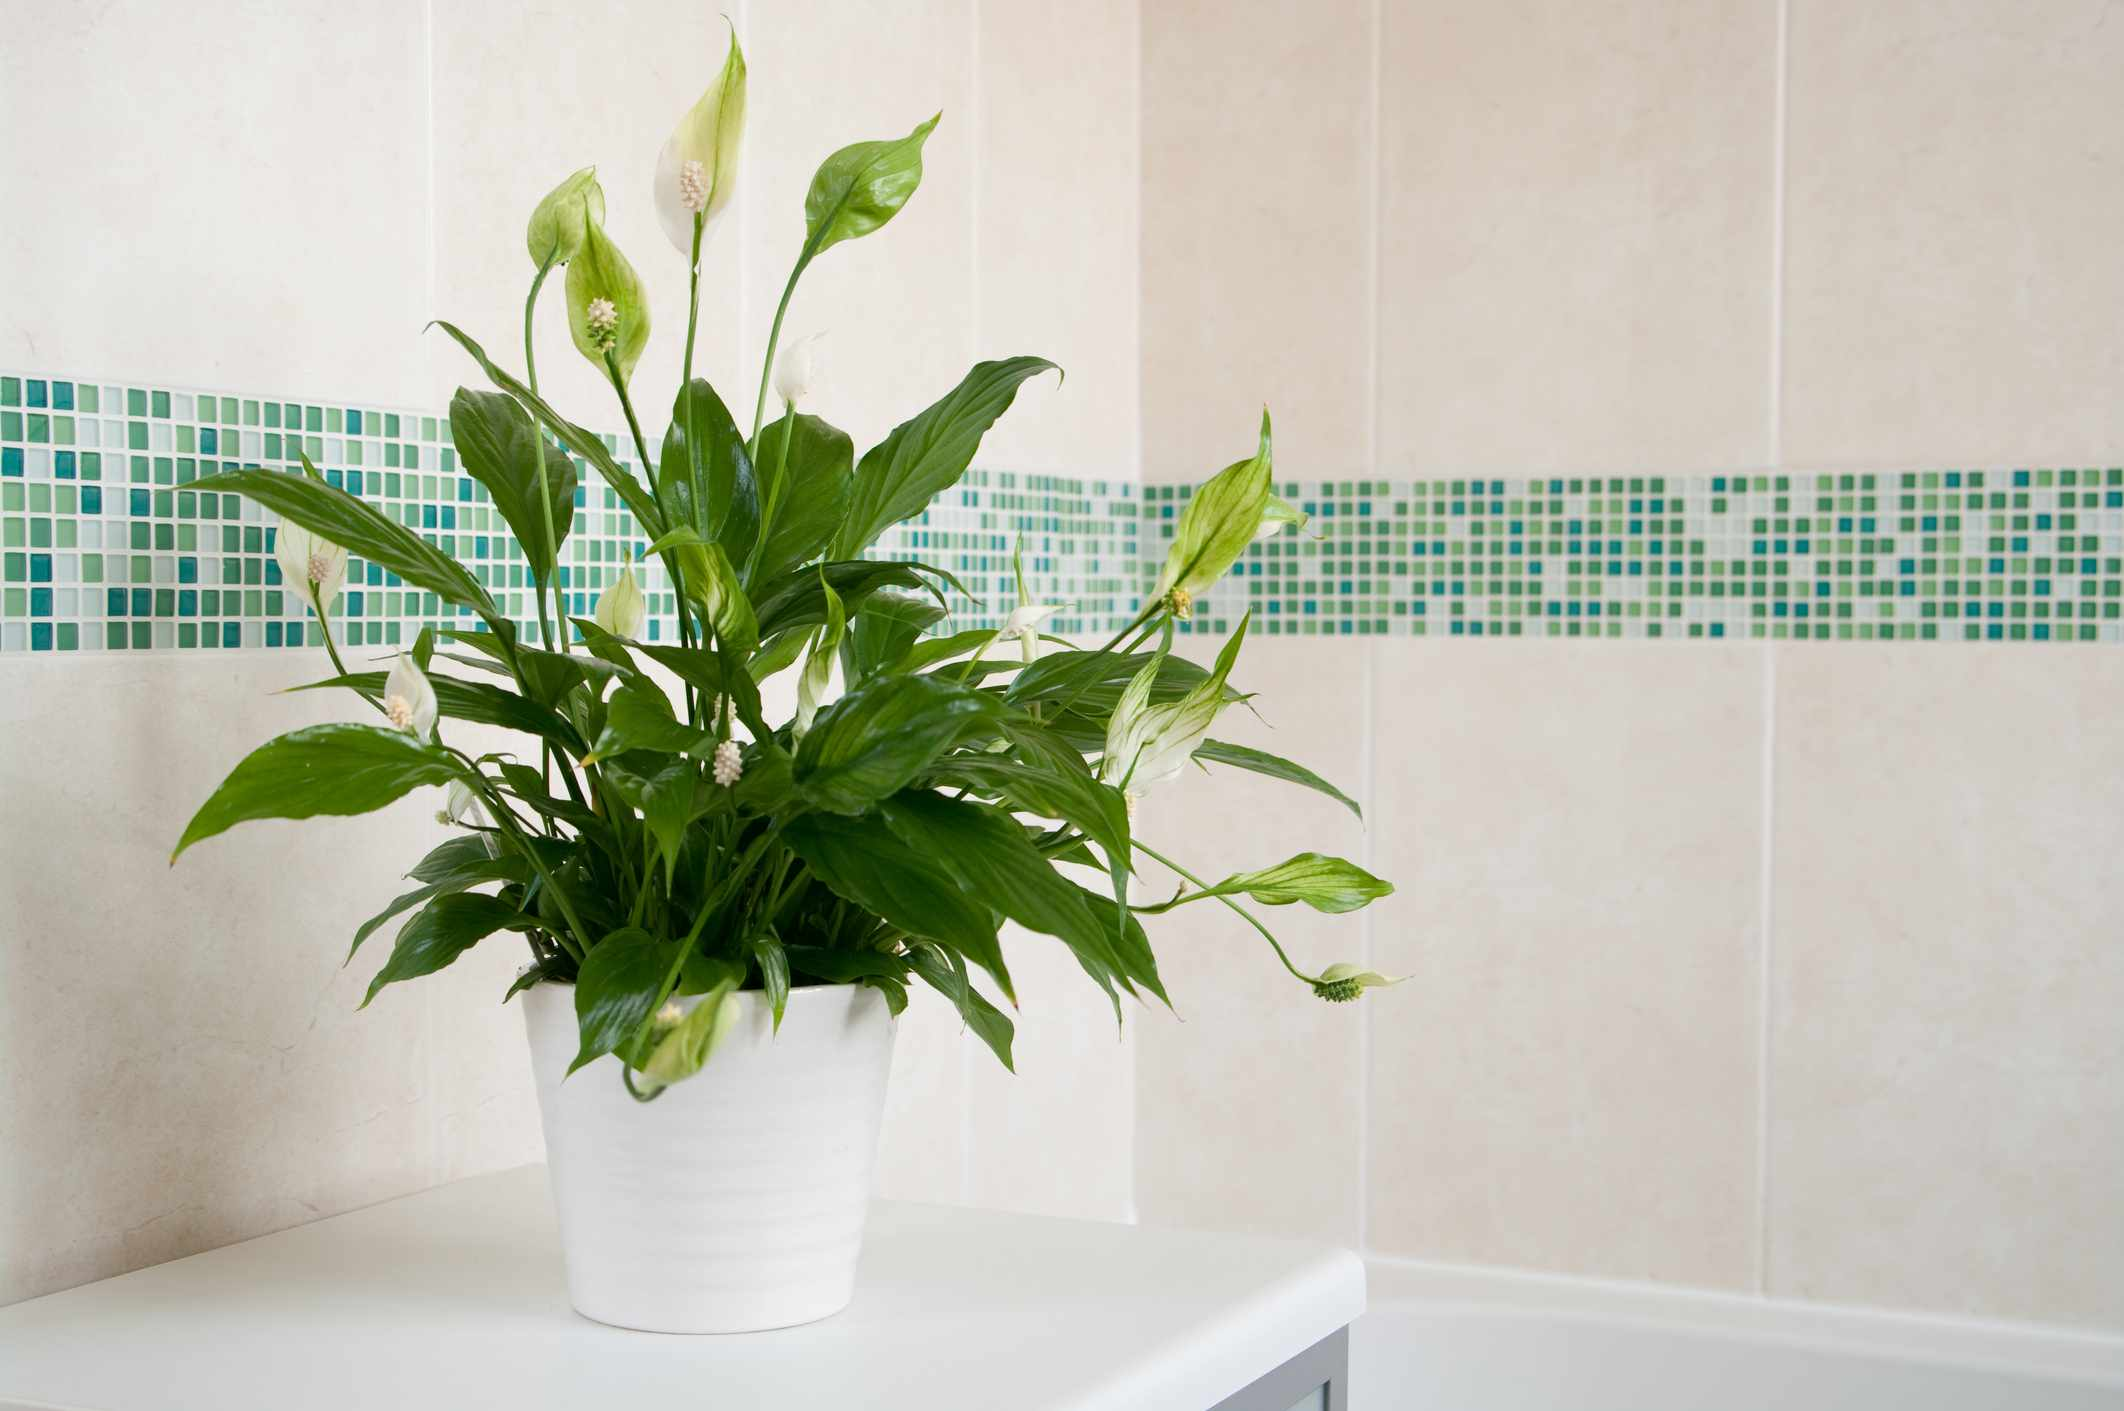 A plant with large white flowers in a white pot in a bathroom